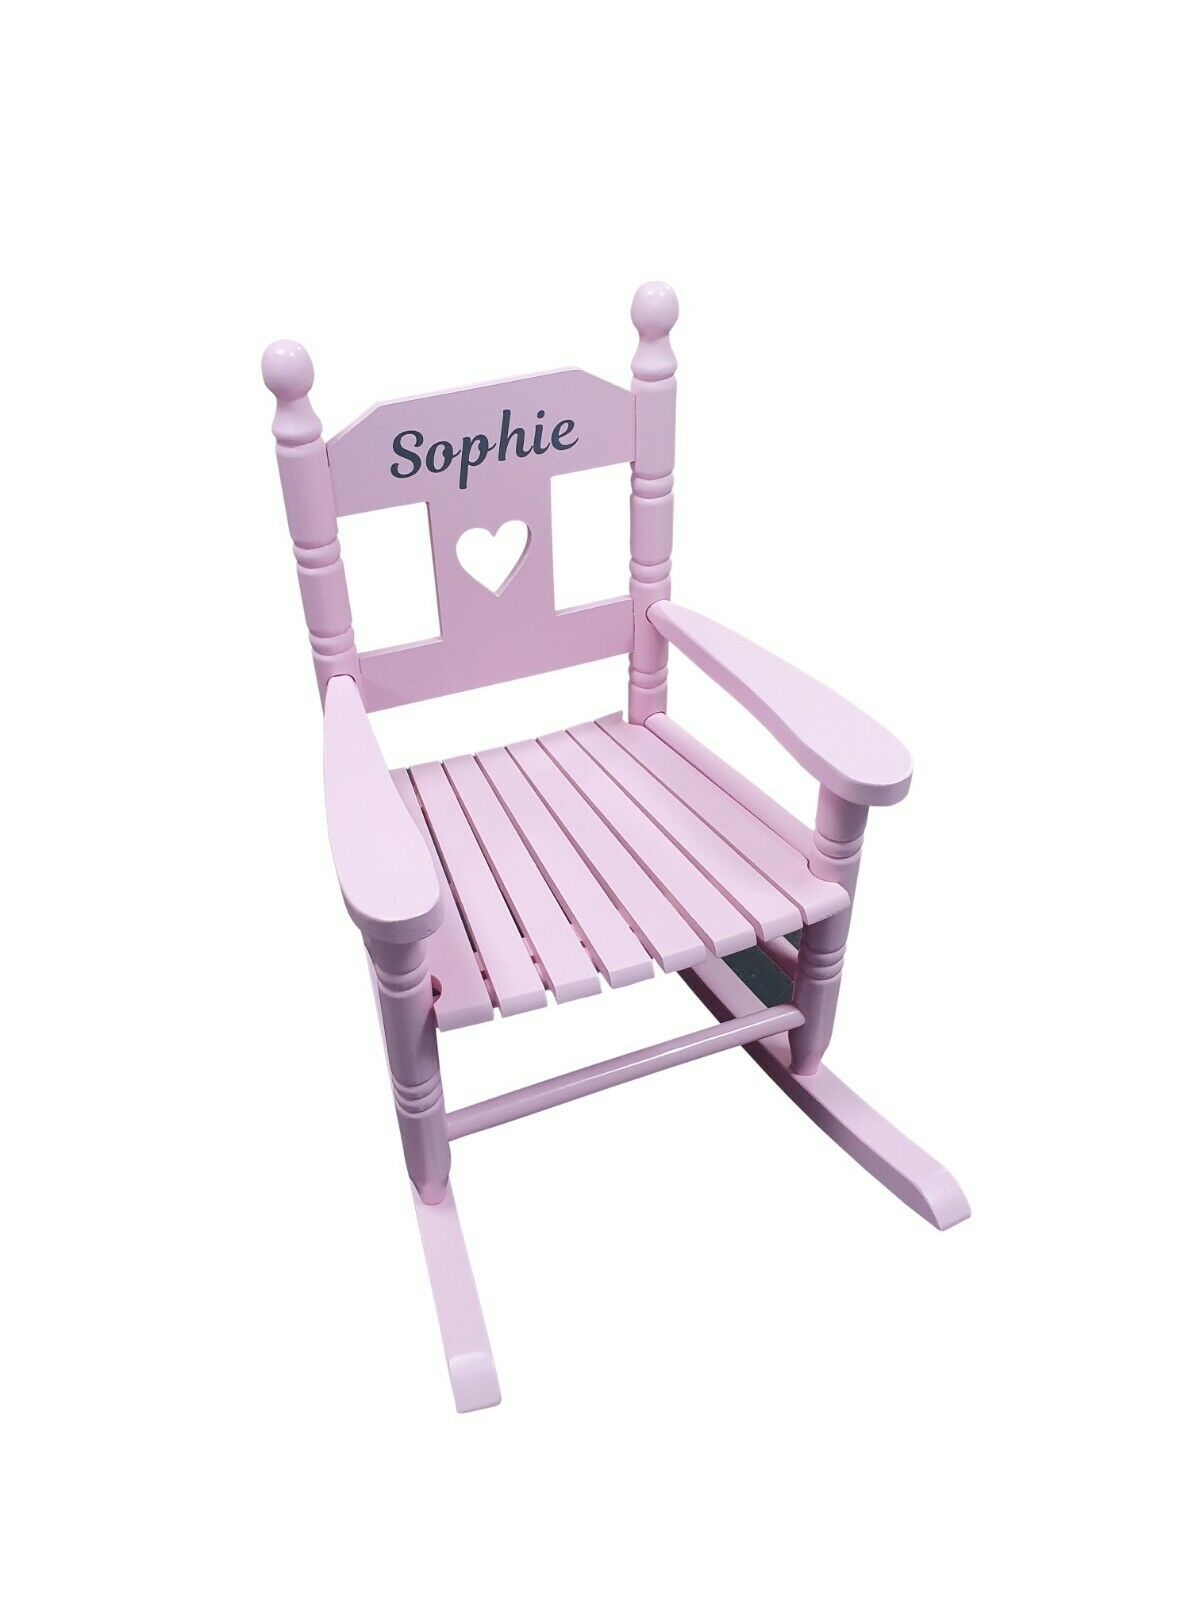 Details about Pink Personalised Kids Chair Rocking Chairs Nursery Toddler Armchair Childrens